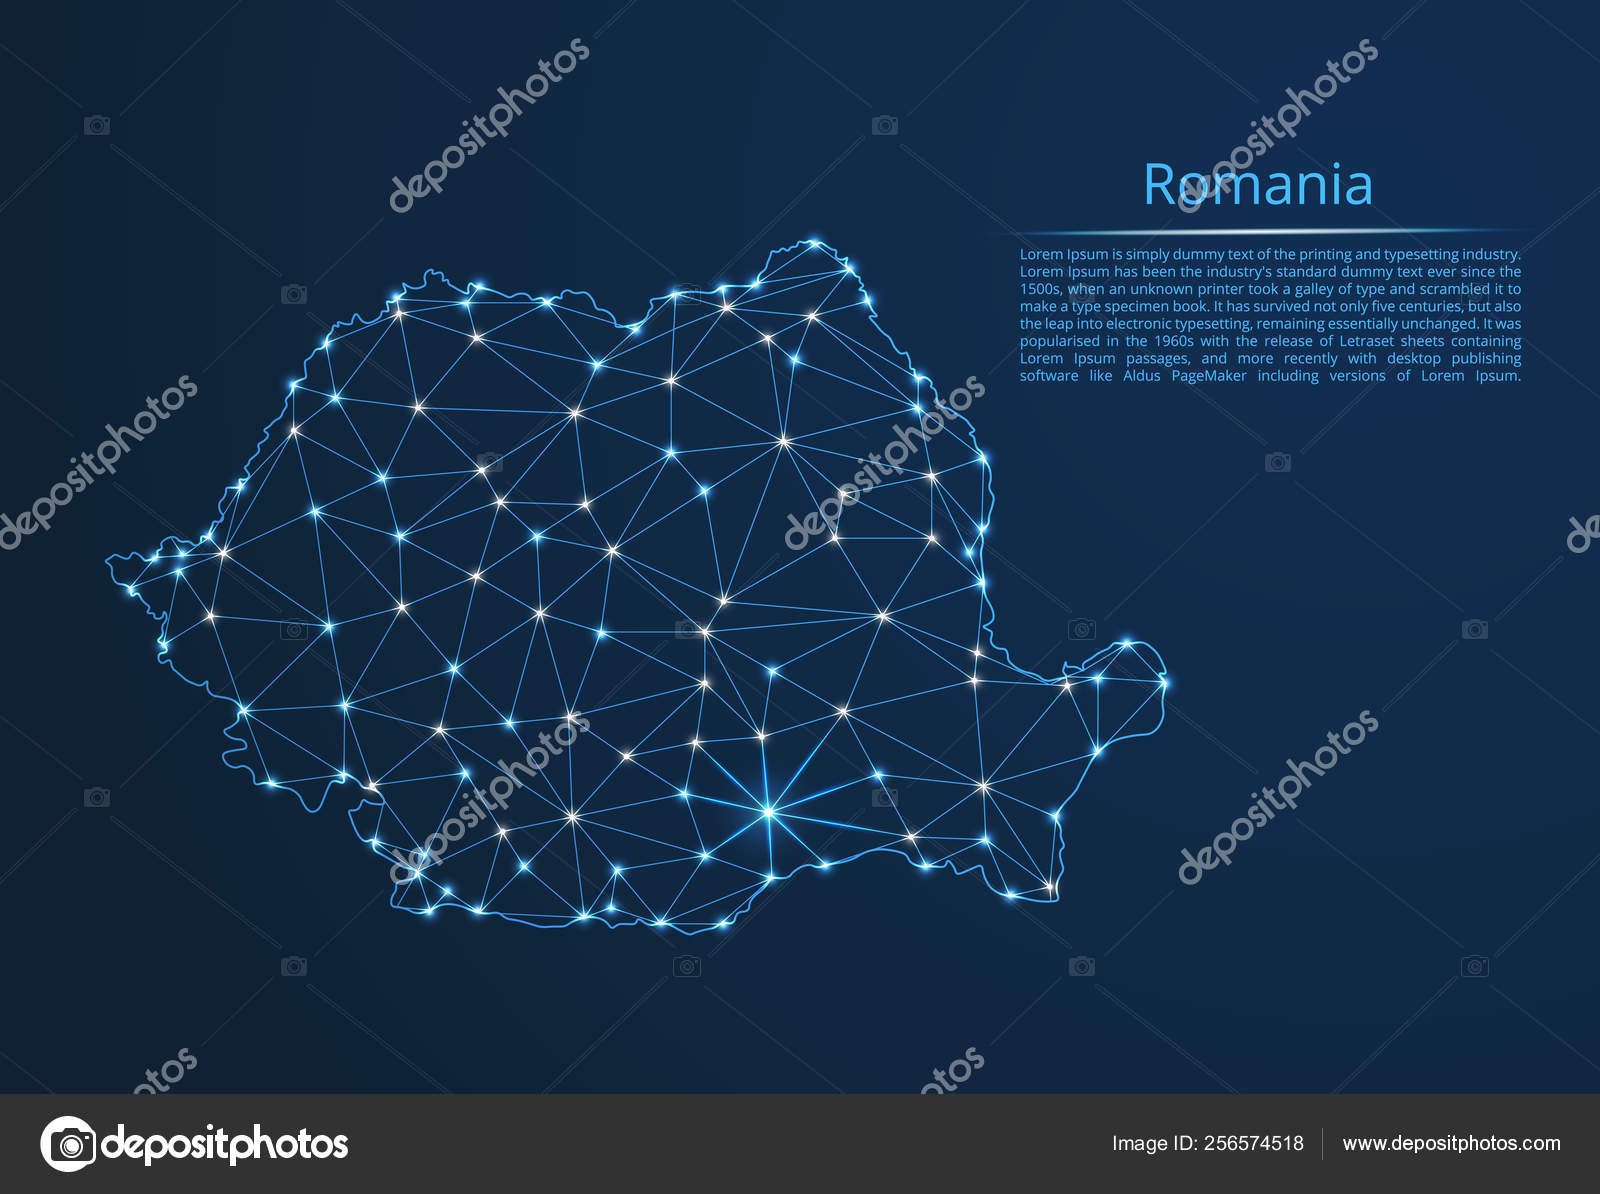 Romania communication network map  Vector low poly image of